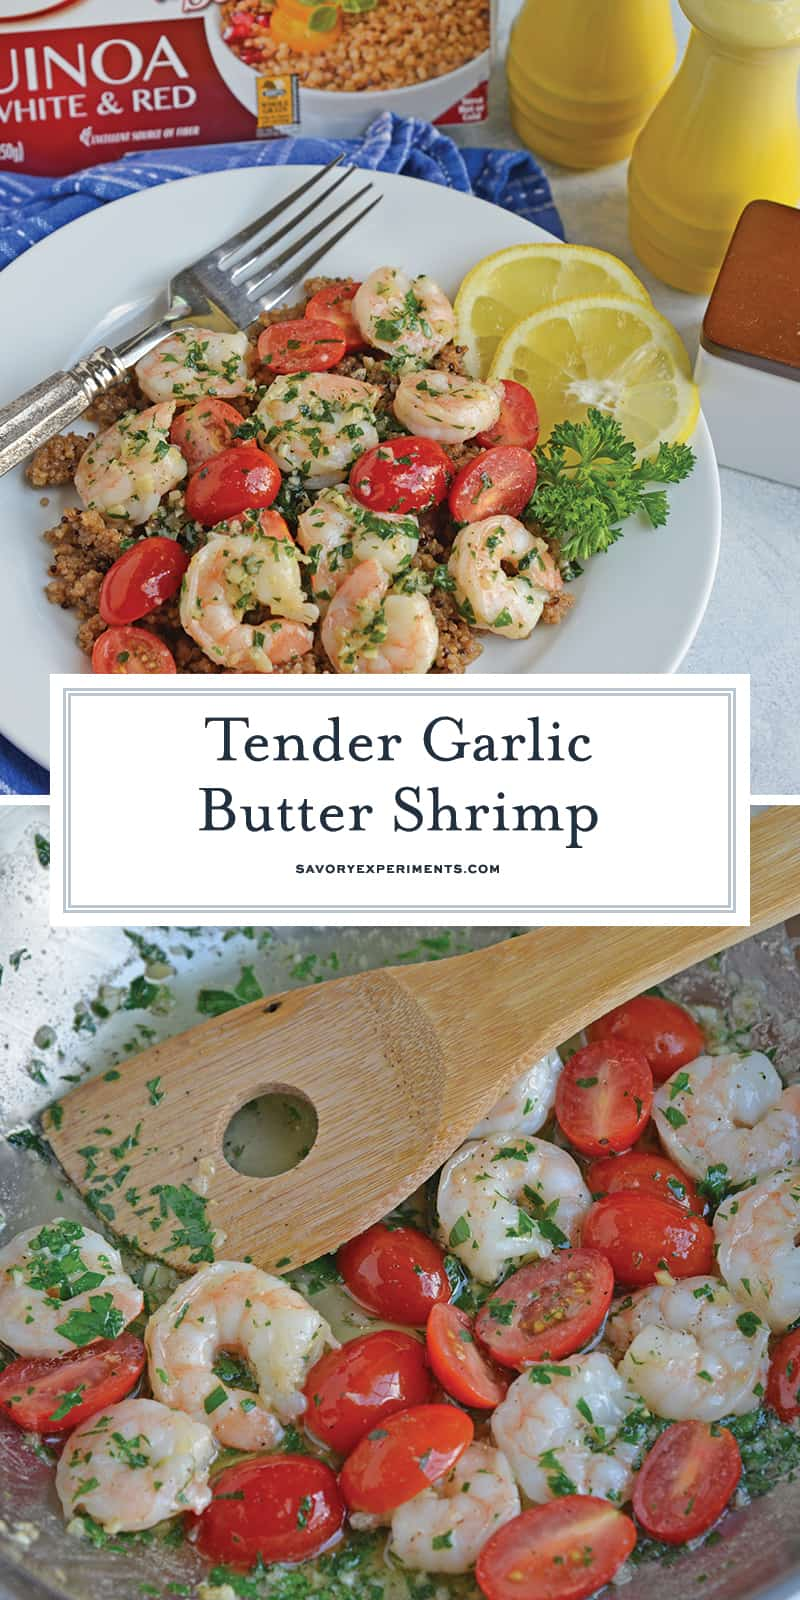 Garlic Butter Shrimp is a quick and easy meal solution that takes only 10 minutes to prepare! Served over wholesome quinoa with garlicky shrimp and tomatoes. #garlicbuttershrimp #easyshrimprecipes www.savoryexperiments.com